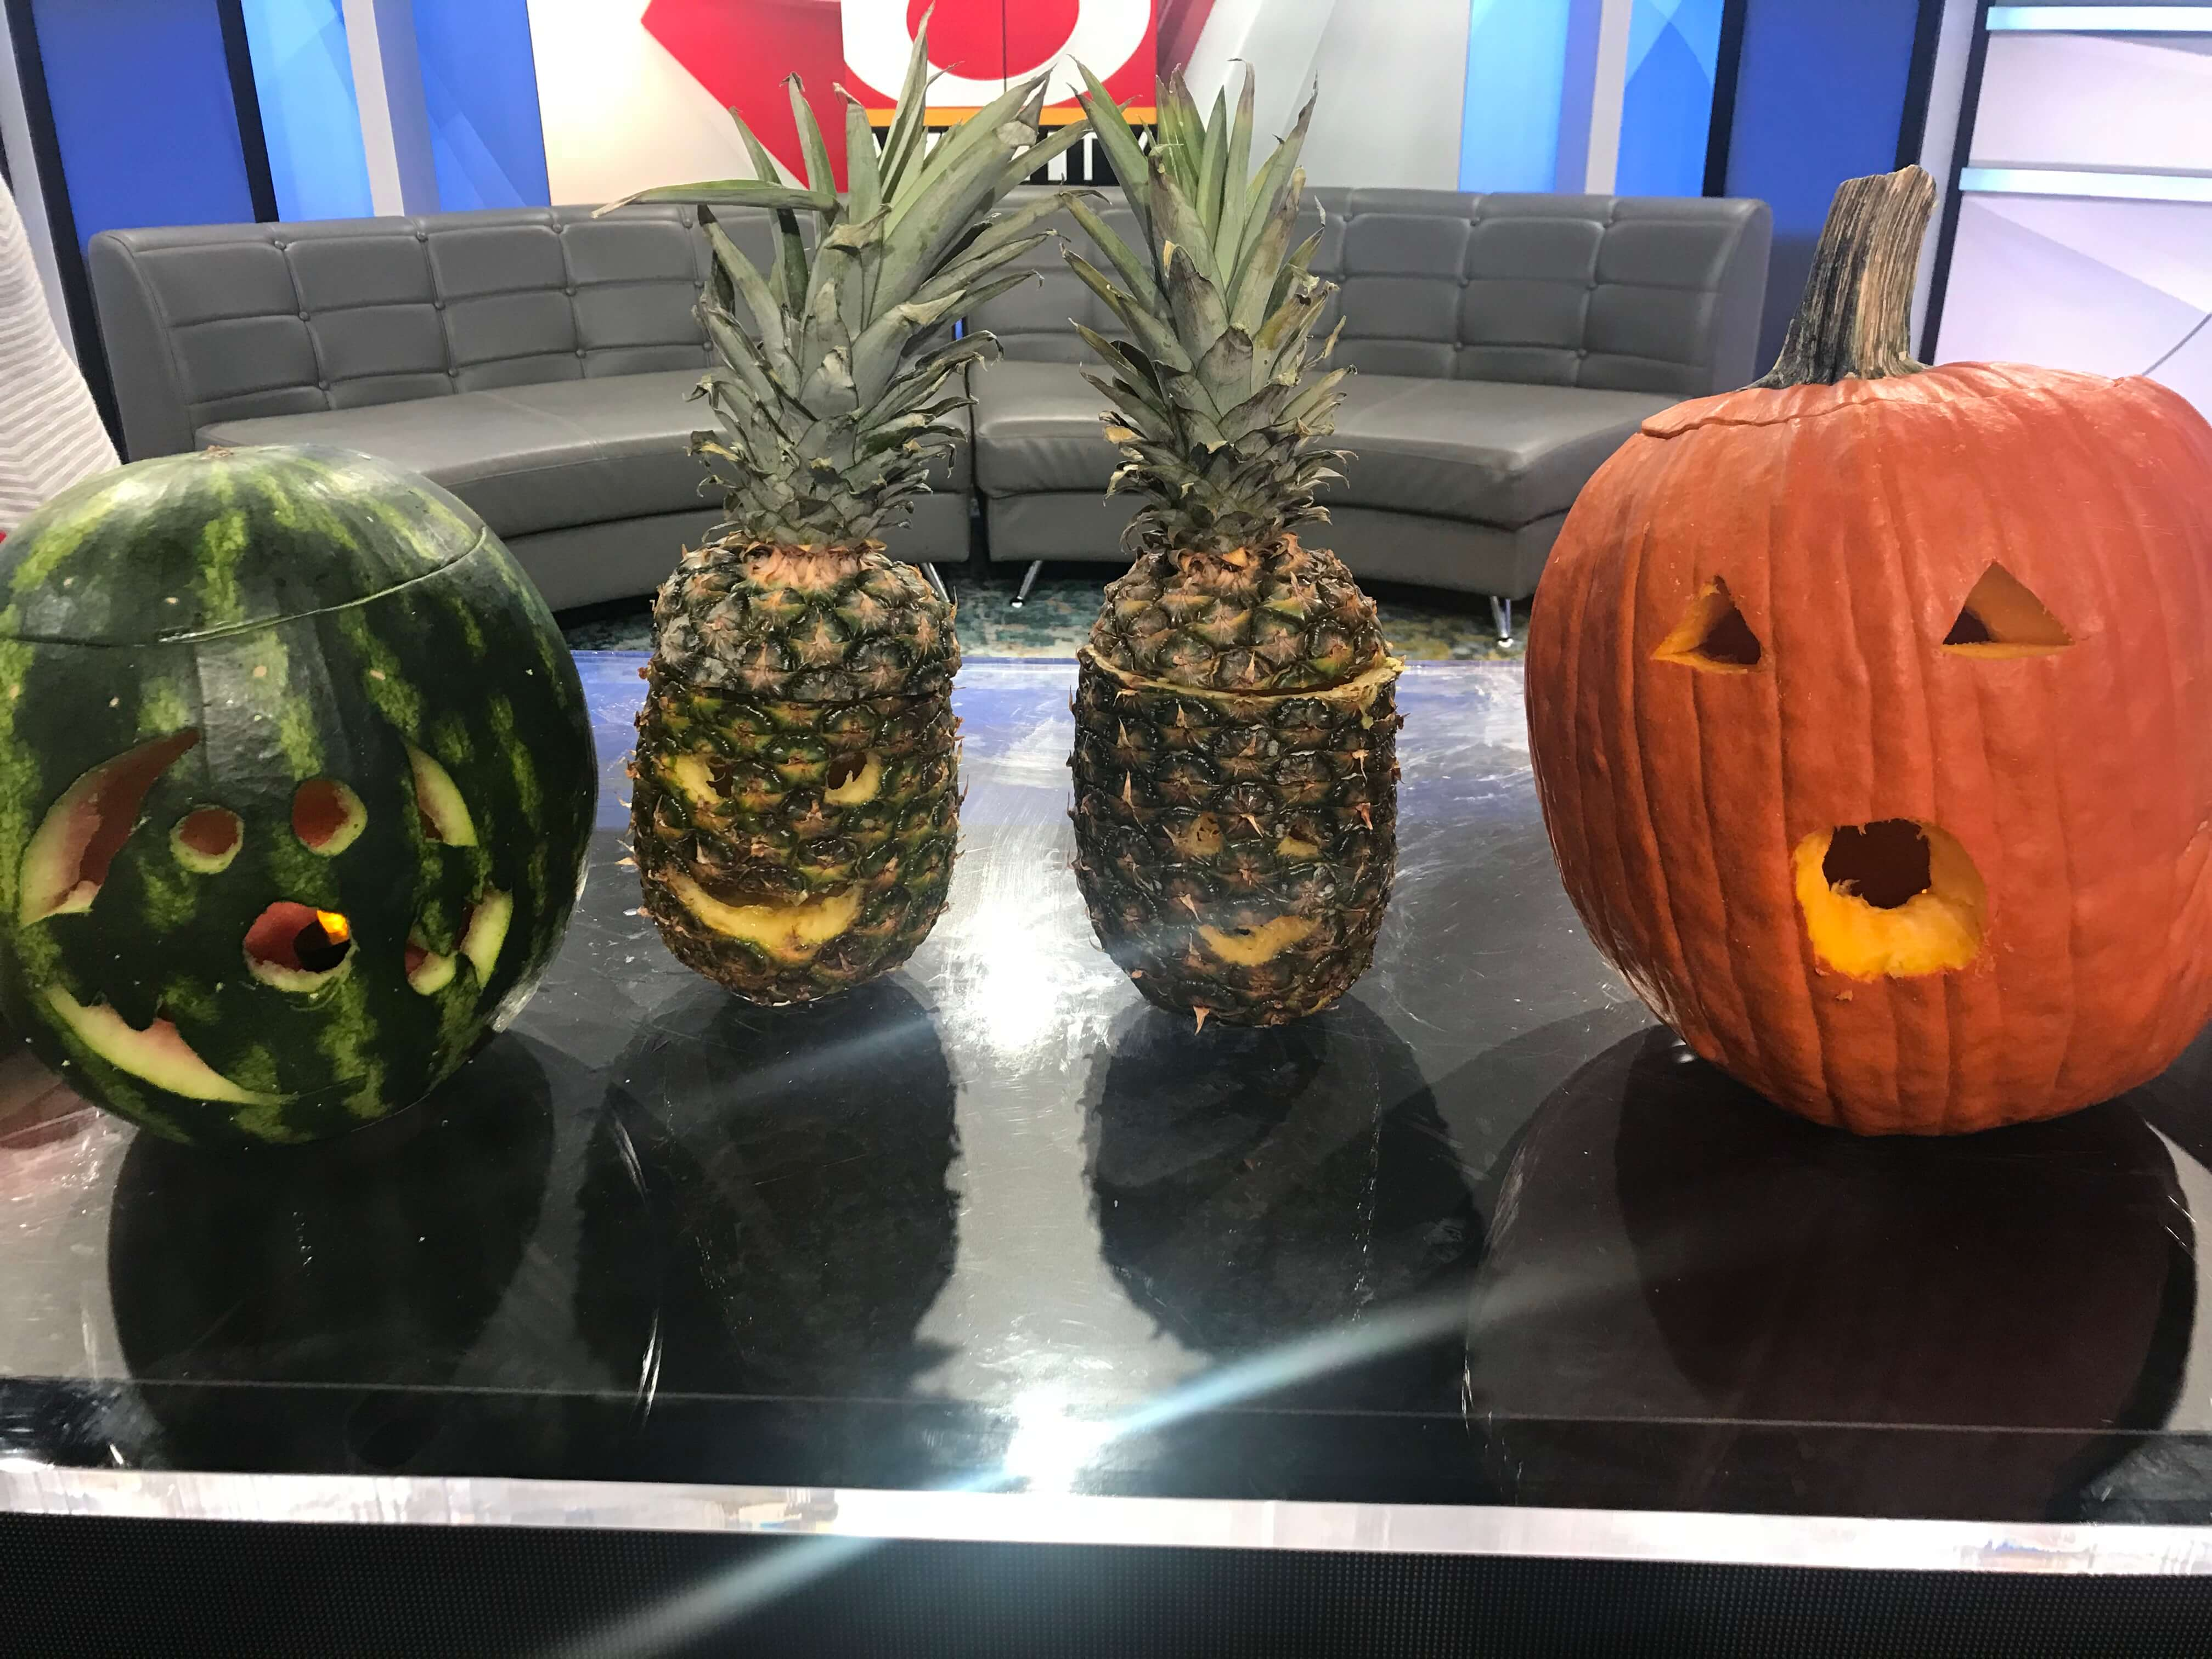 Carving Fresh Produce for Halloween